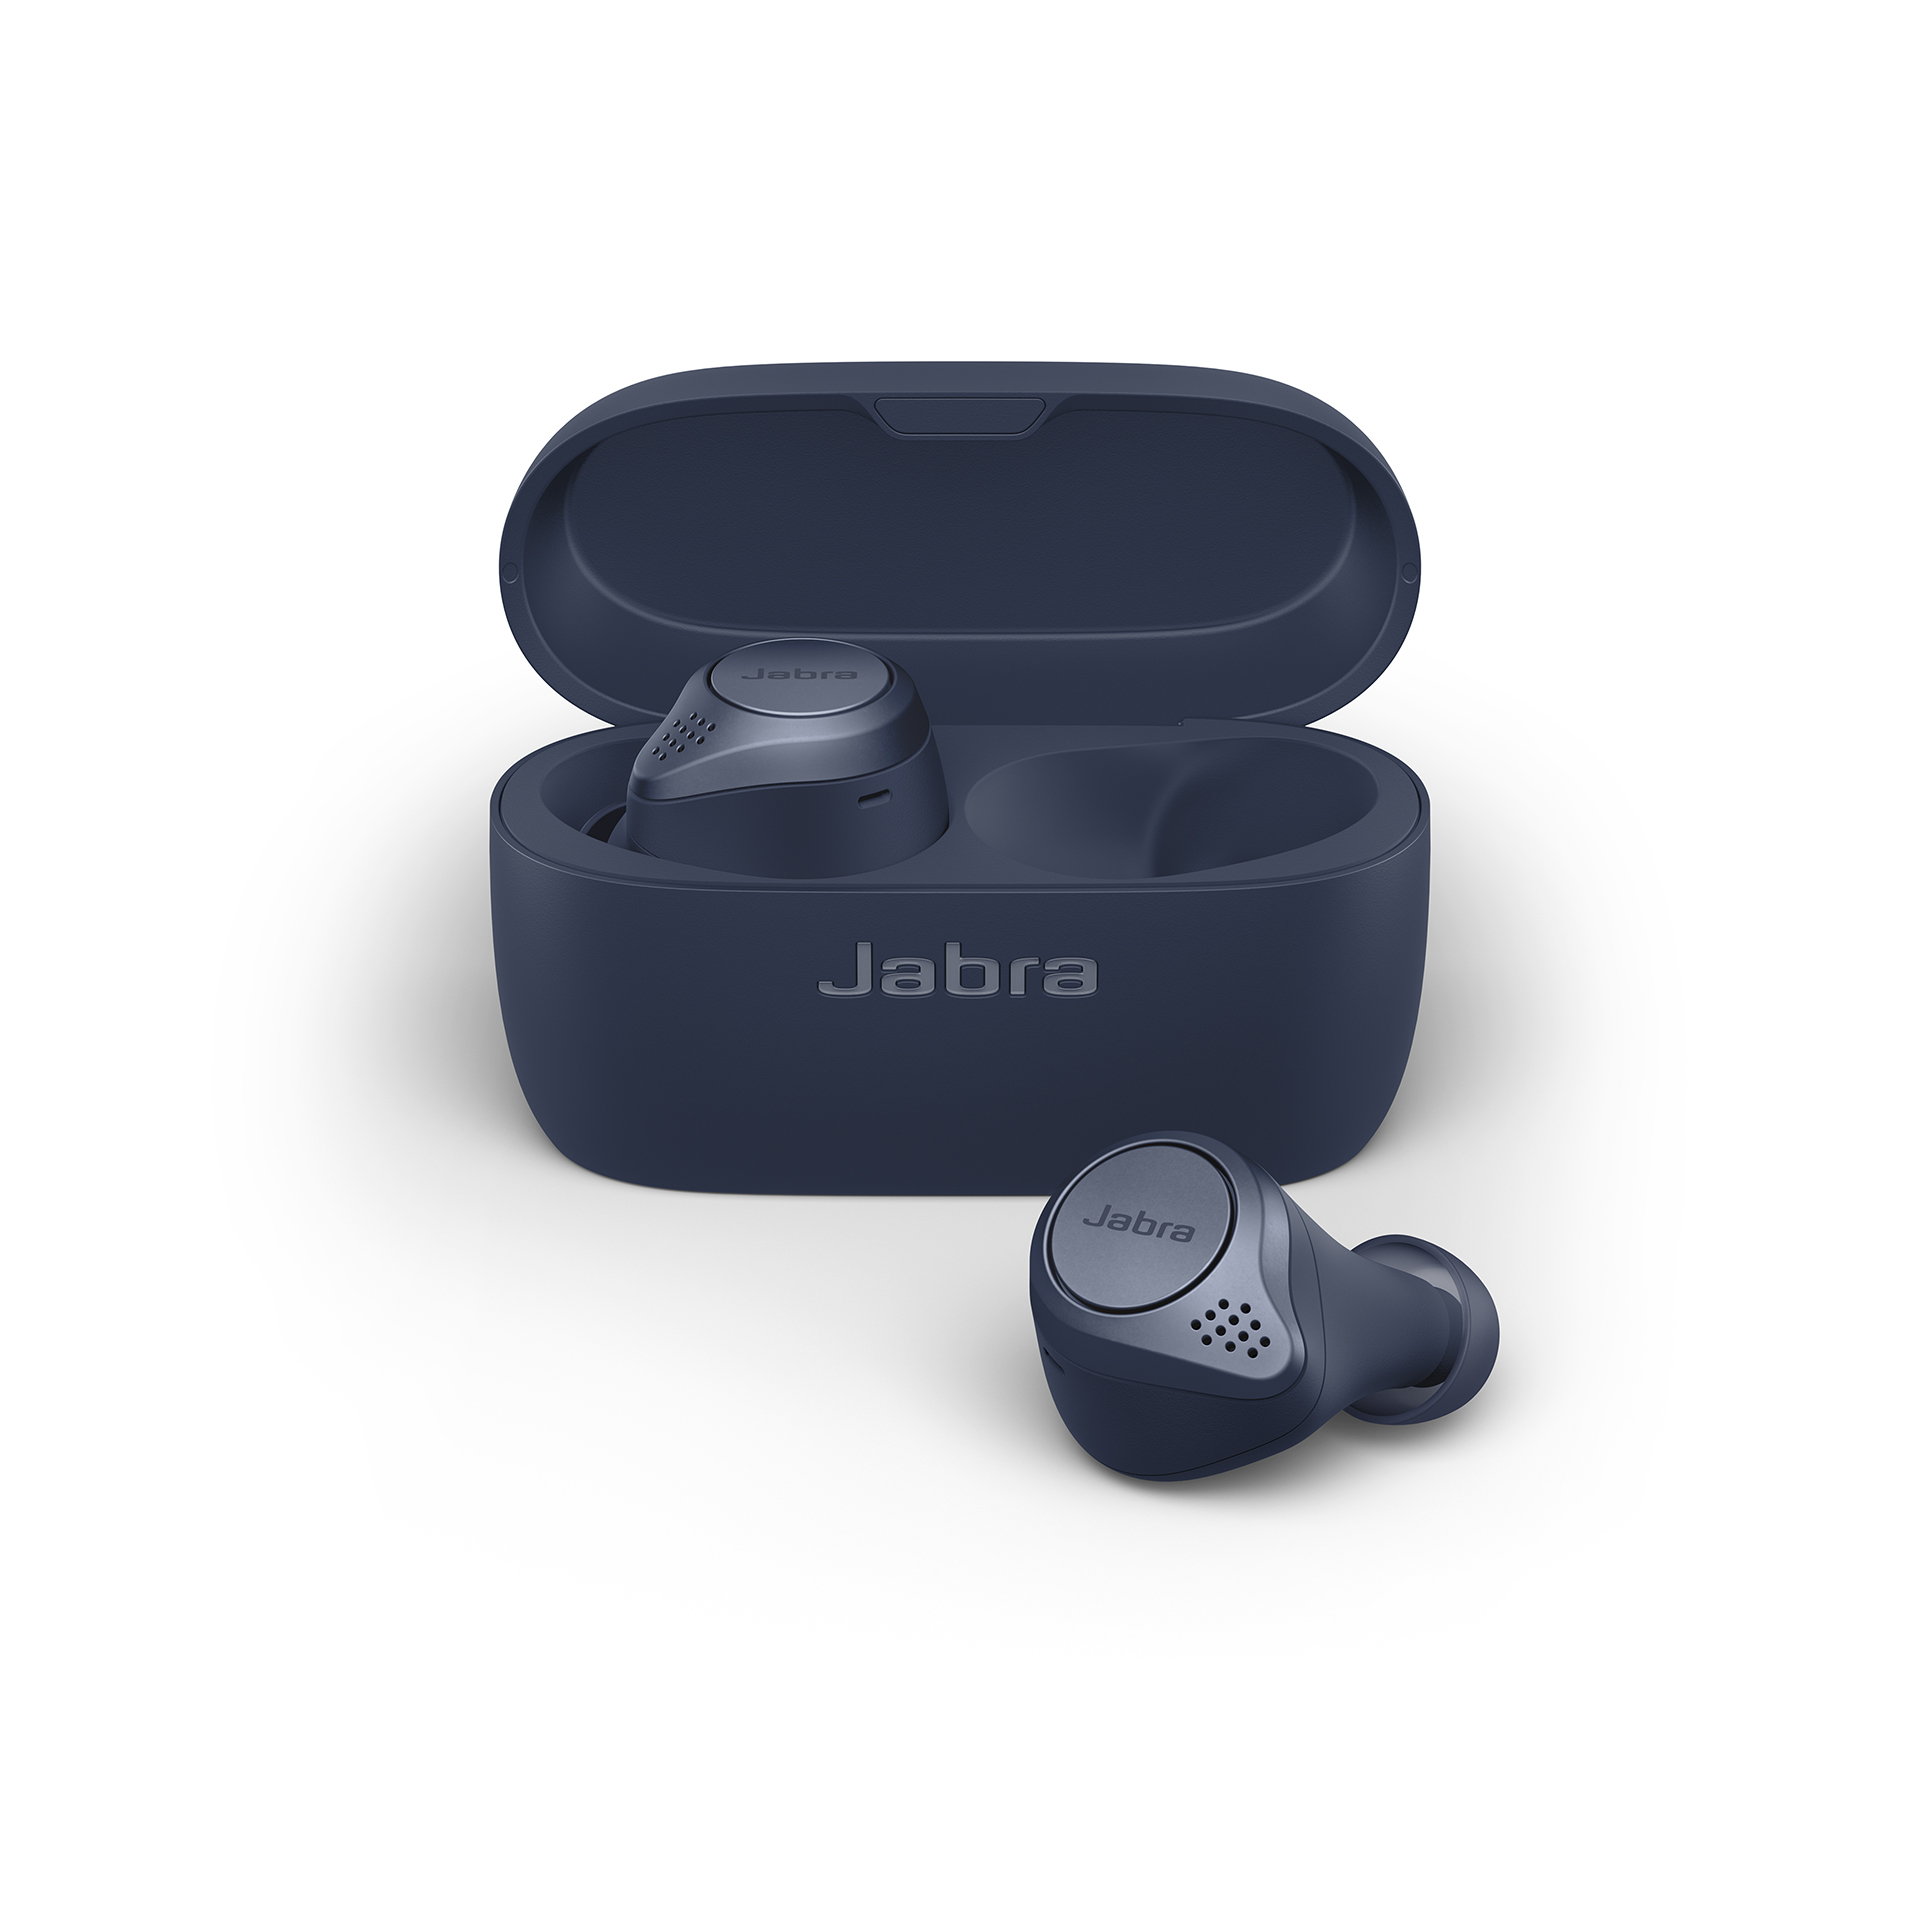 Jabra Elite Active 75t Earbuds – Active Noise Cancelling True Wireless Sports Earphones with Long Battery Life for Calls and Music – Navy